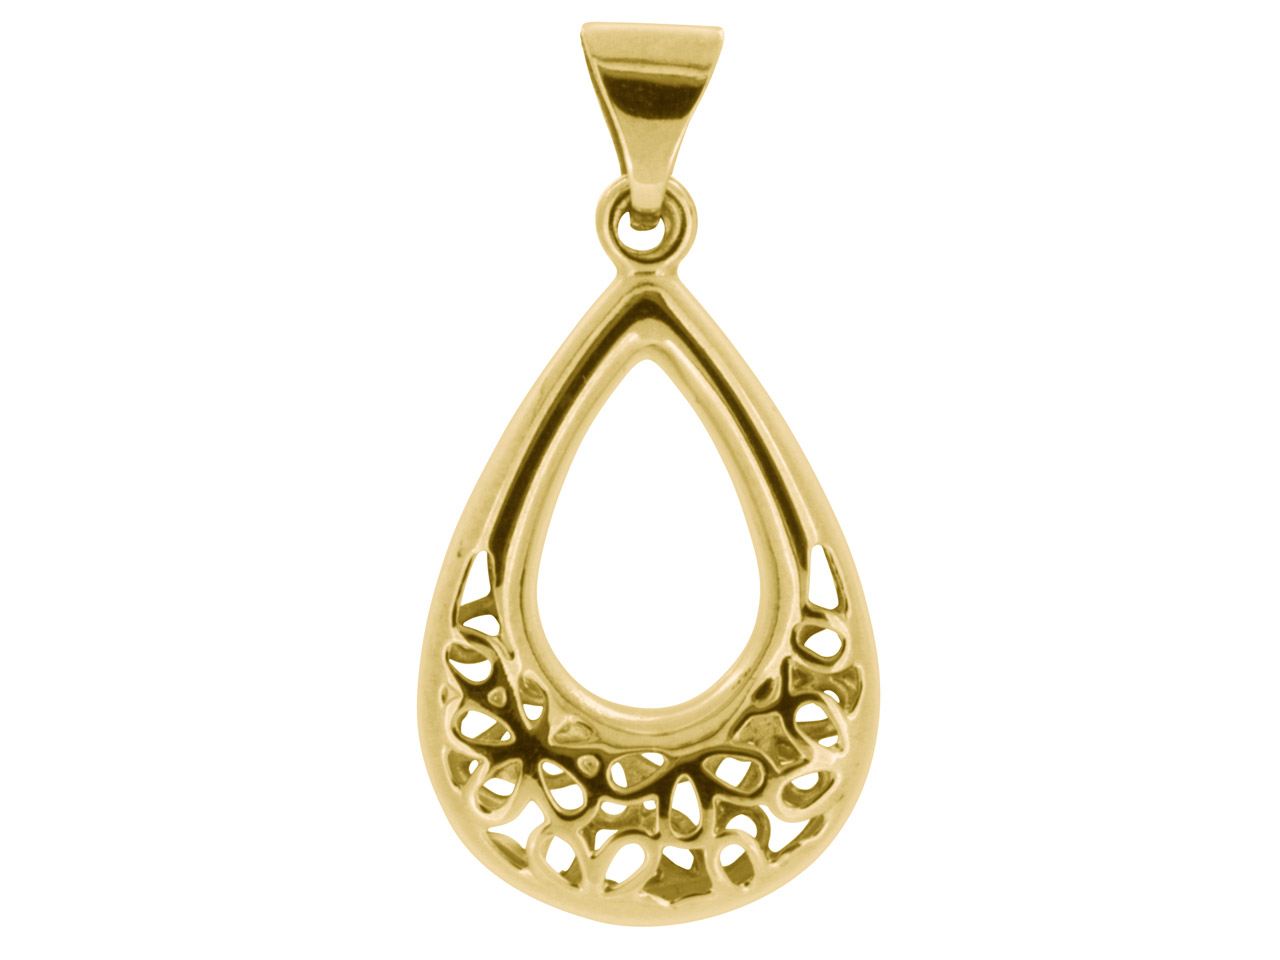 9ct Yellow Filigree Design Double  Sided Pendant